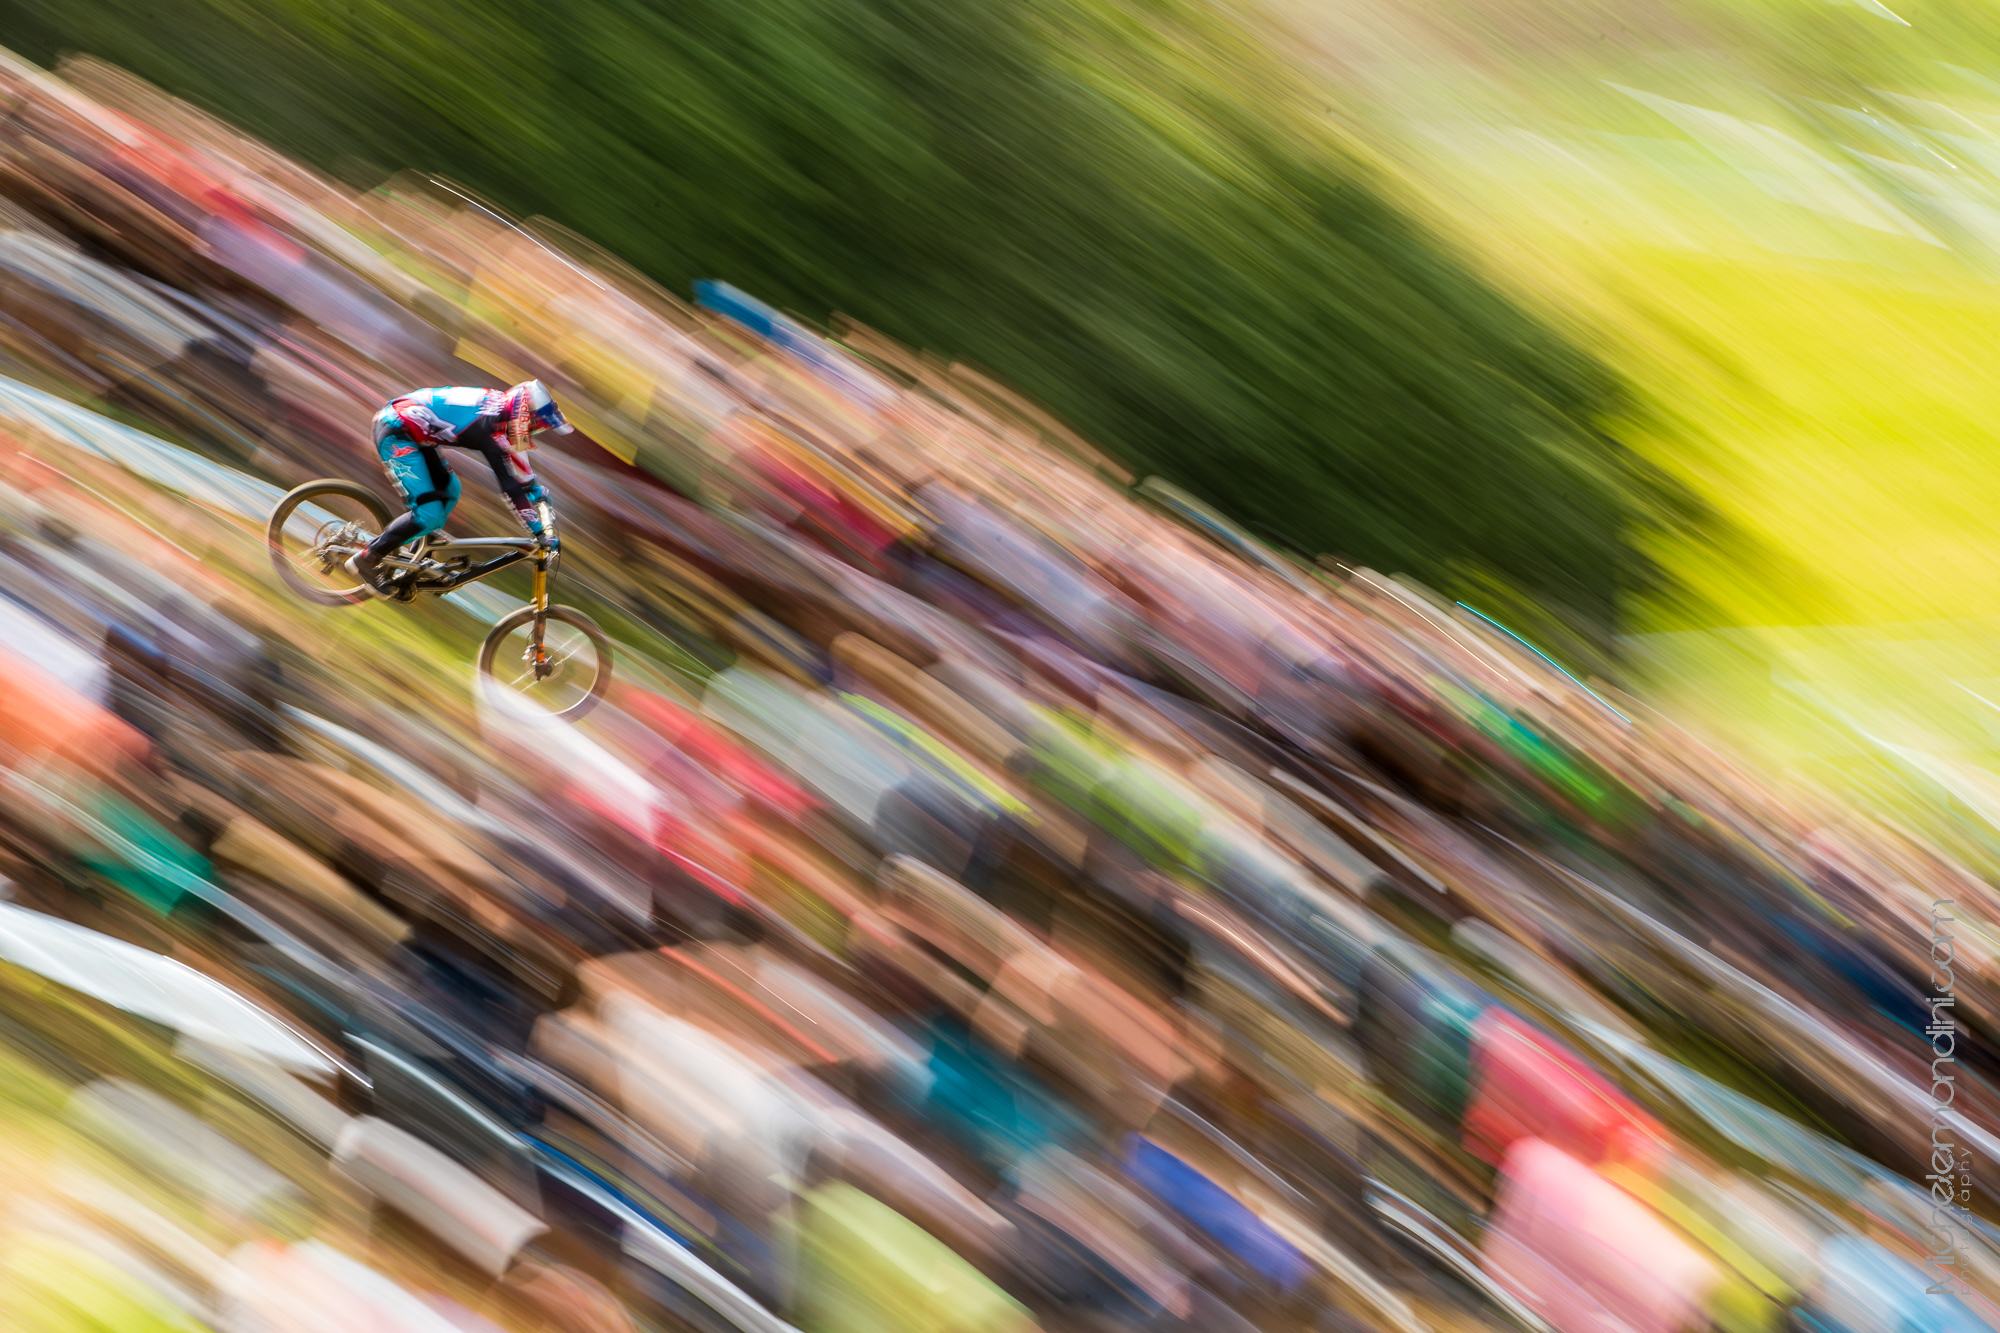 Aron Gwin on Pippo Jump in his final run - Val di Sole - Ph: Michele Mondini